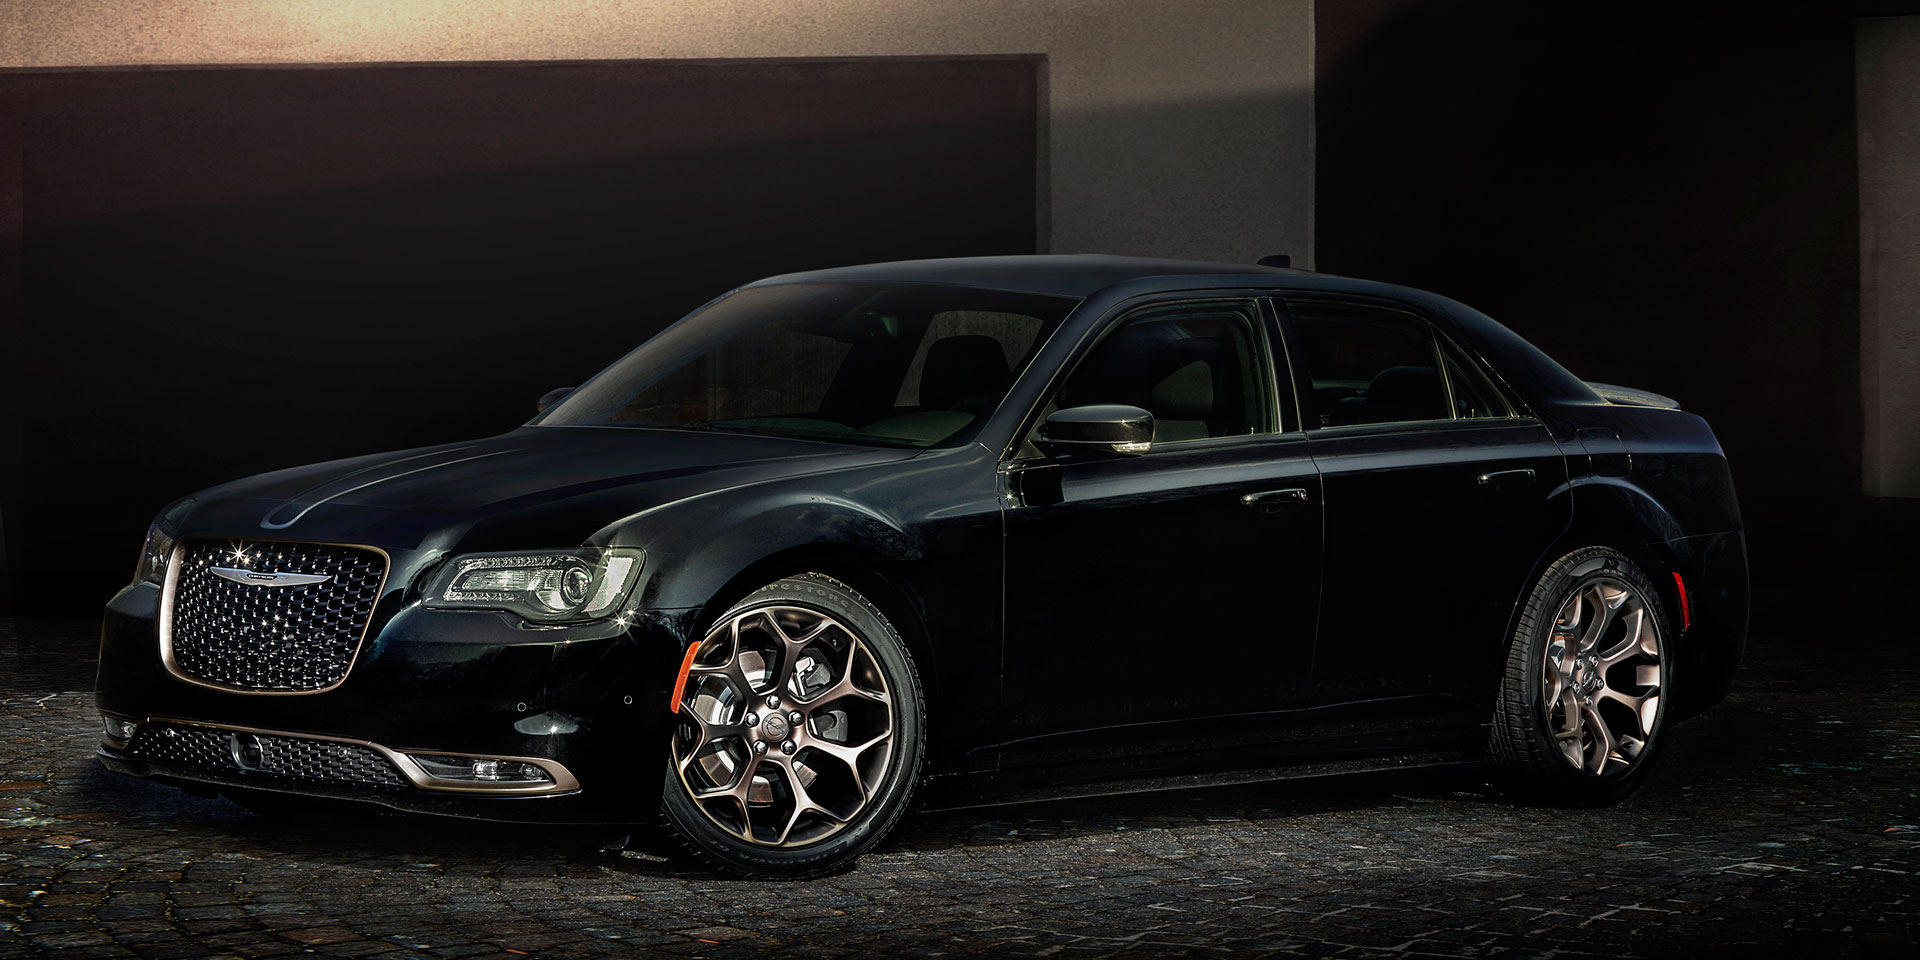 2016 Chrysler 300s Alloy Edition Vehicles On Display